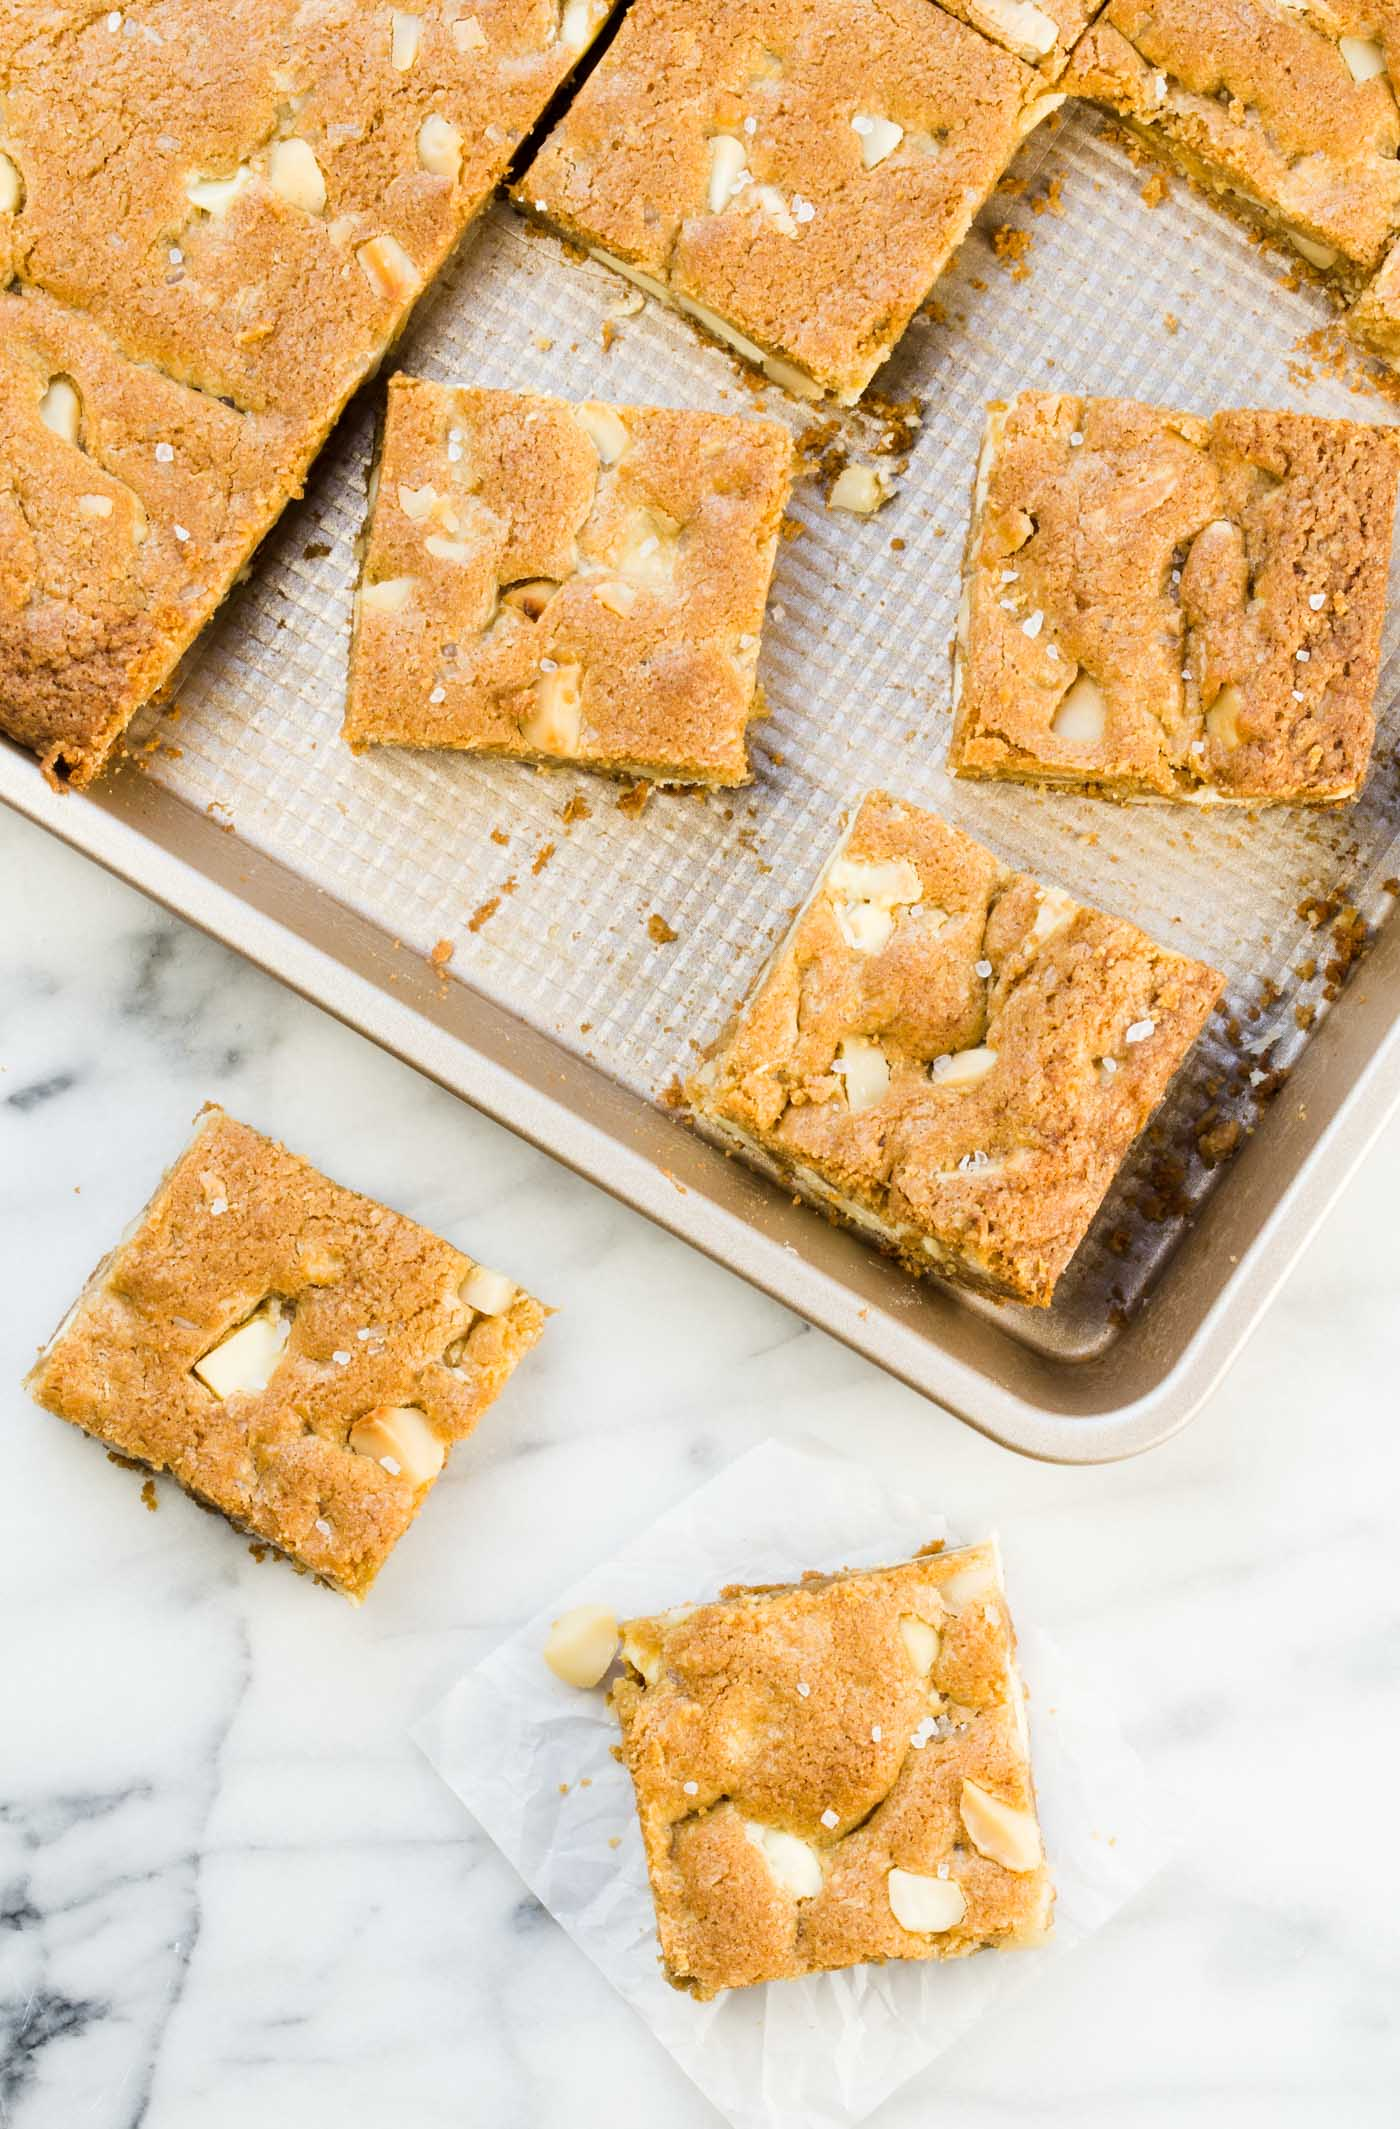 Change up your cookie craving with a pan of these White Chocolate Macadamia Nut Cookie Bars - a quick and easy dessert recipe for potlucks and picnics!